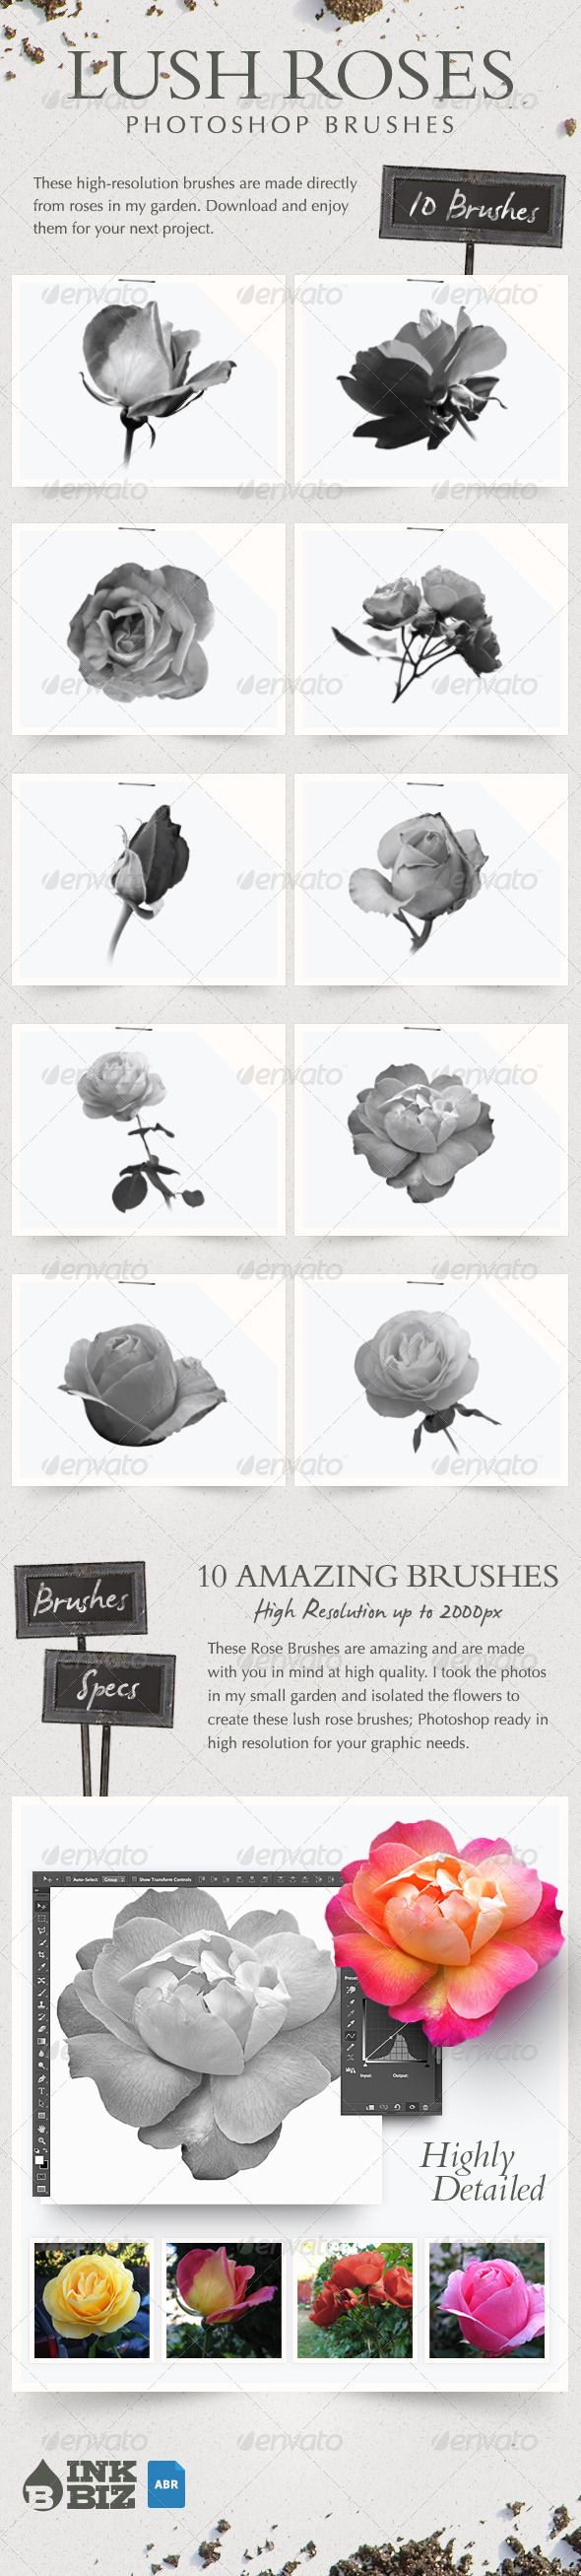 GraphicRiver Lush Roses Photoshop Brushes 7525021